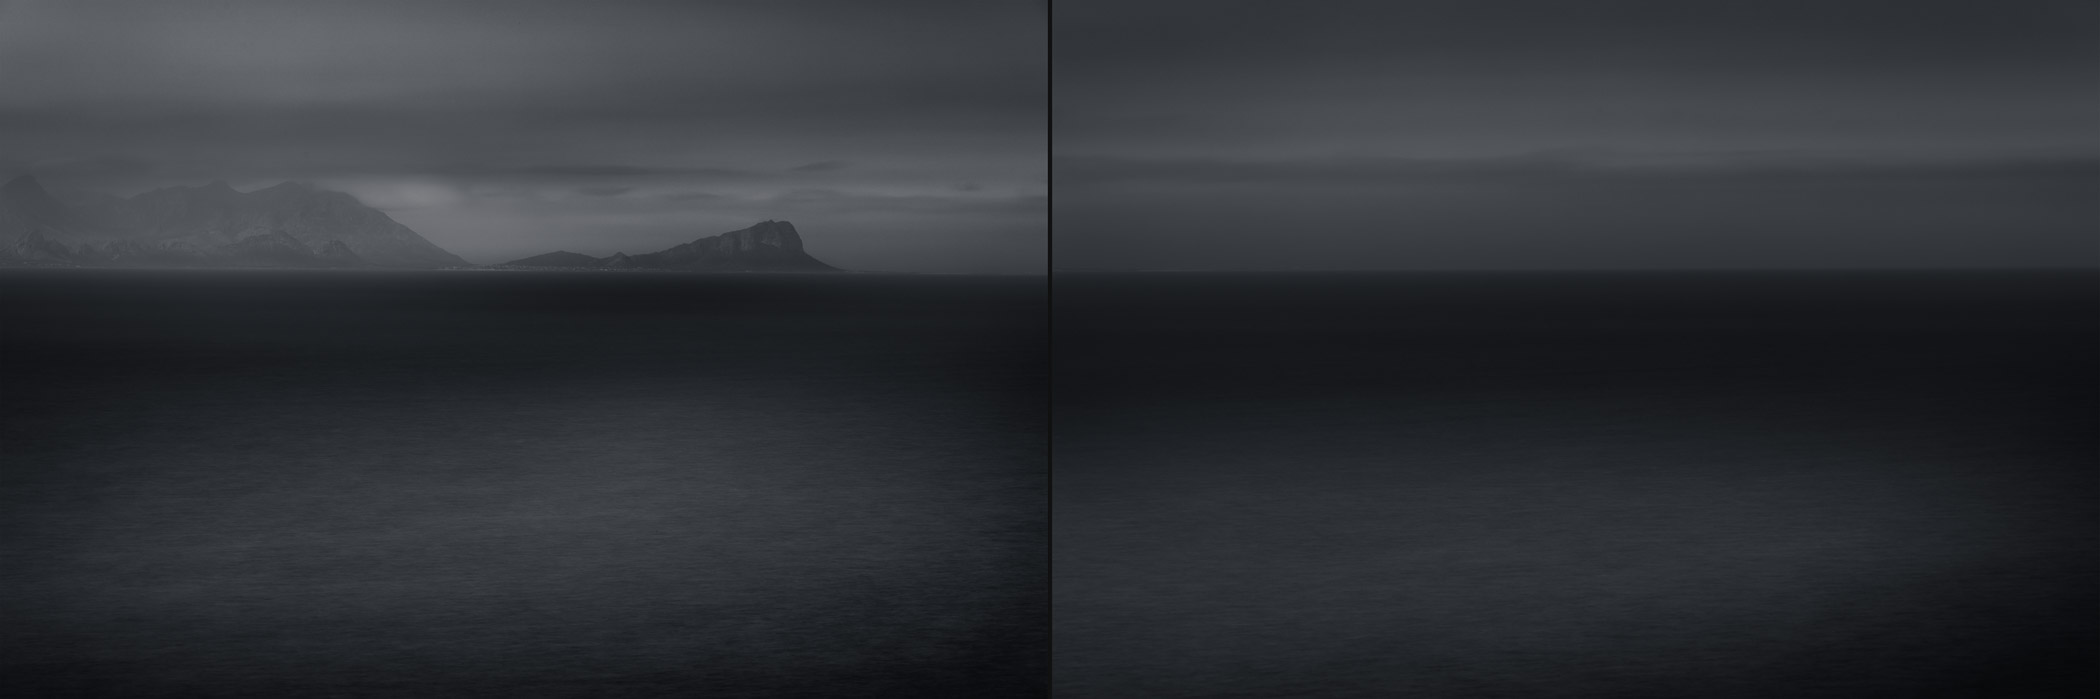 cape point 02 diptych